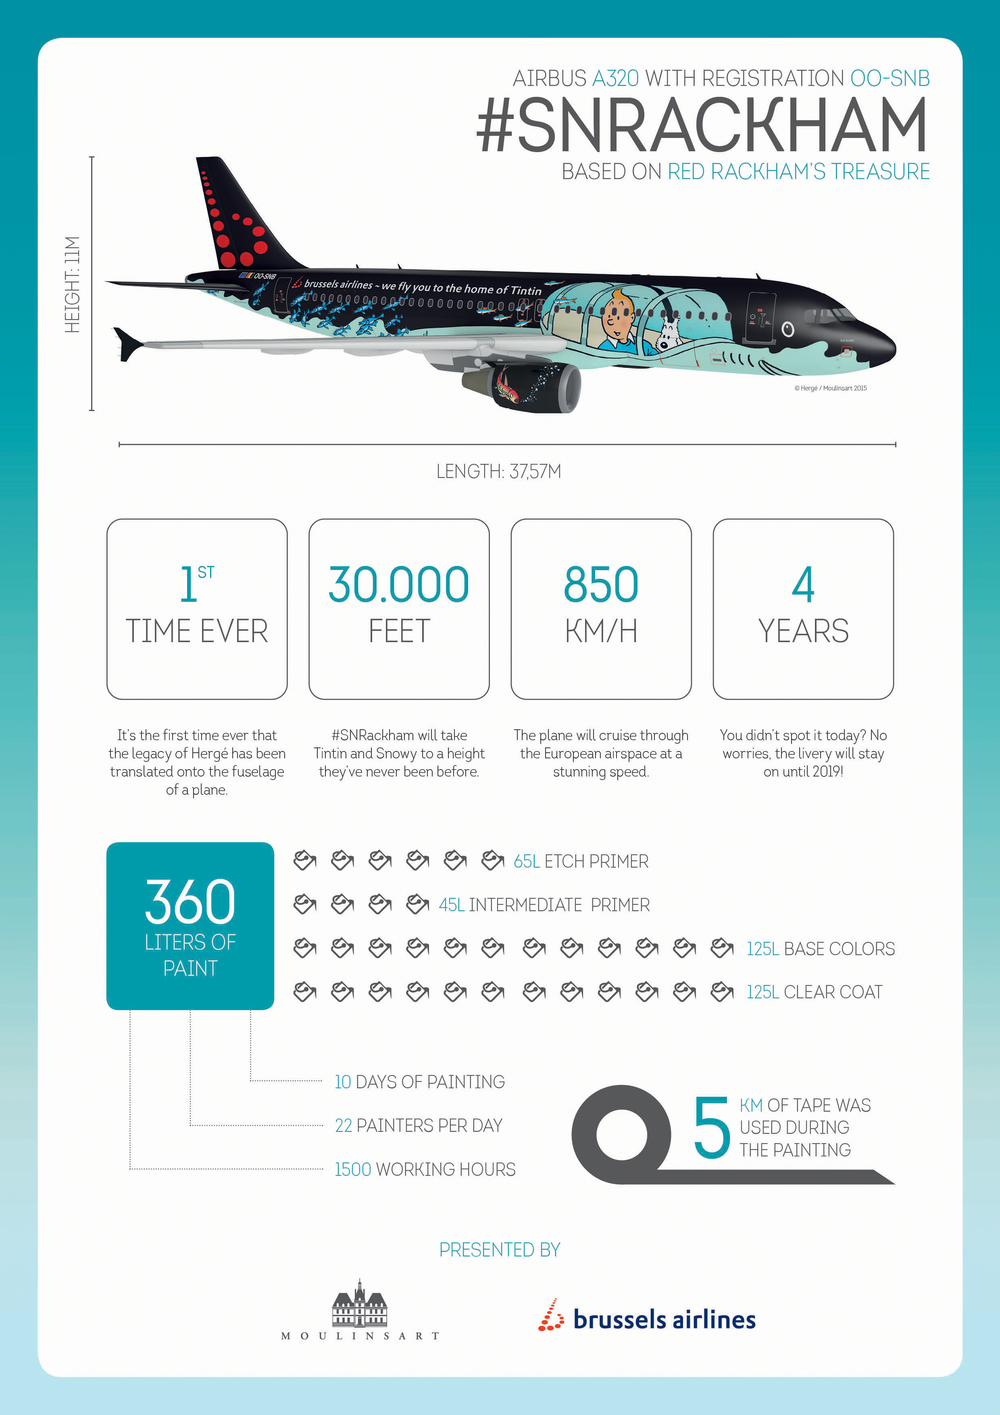 Some facts and figures about Brussels Airlines Tintin #SNRackham Airbus A320